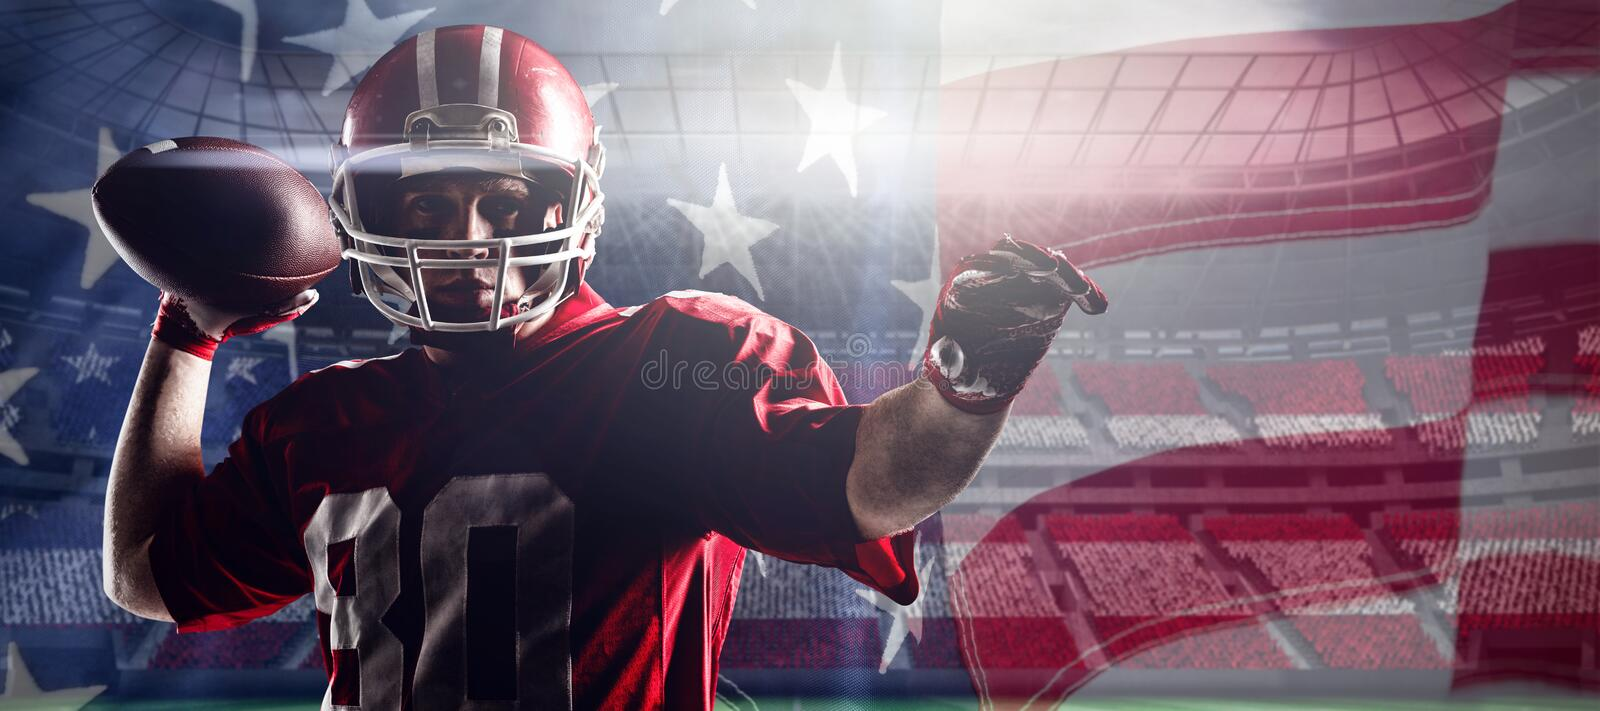 Composite image of american football player standing with helmet preparing to throw ball royalty free stock photo